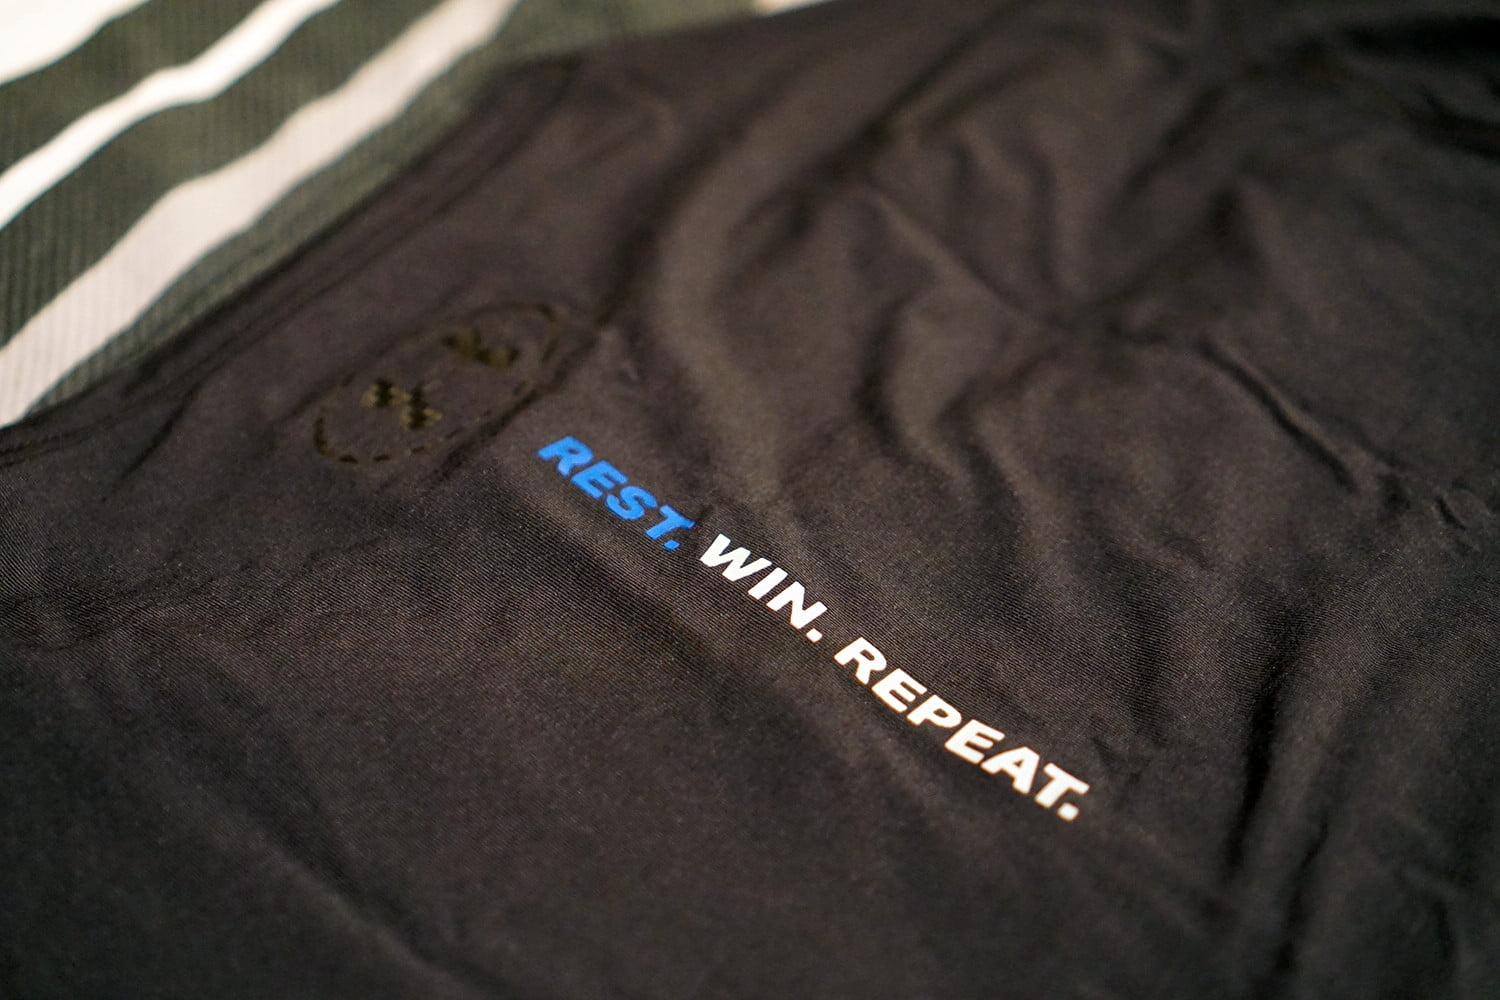 Under Armour Athlete Recover Sleepwear Hands On